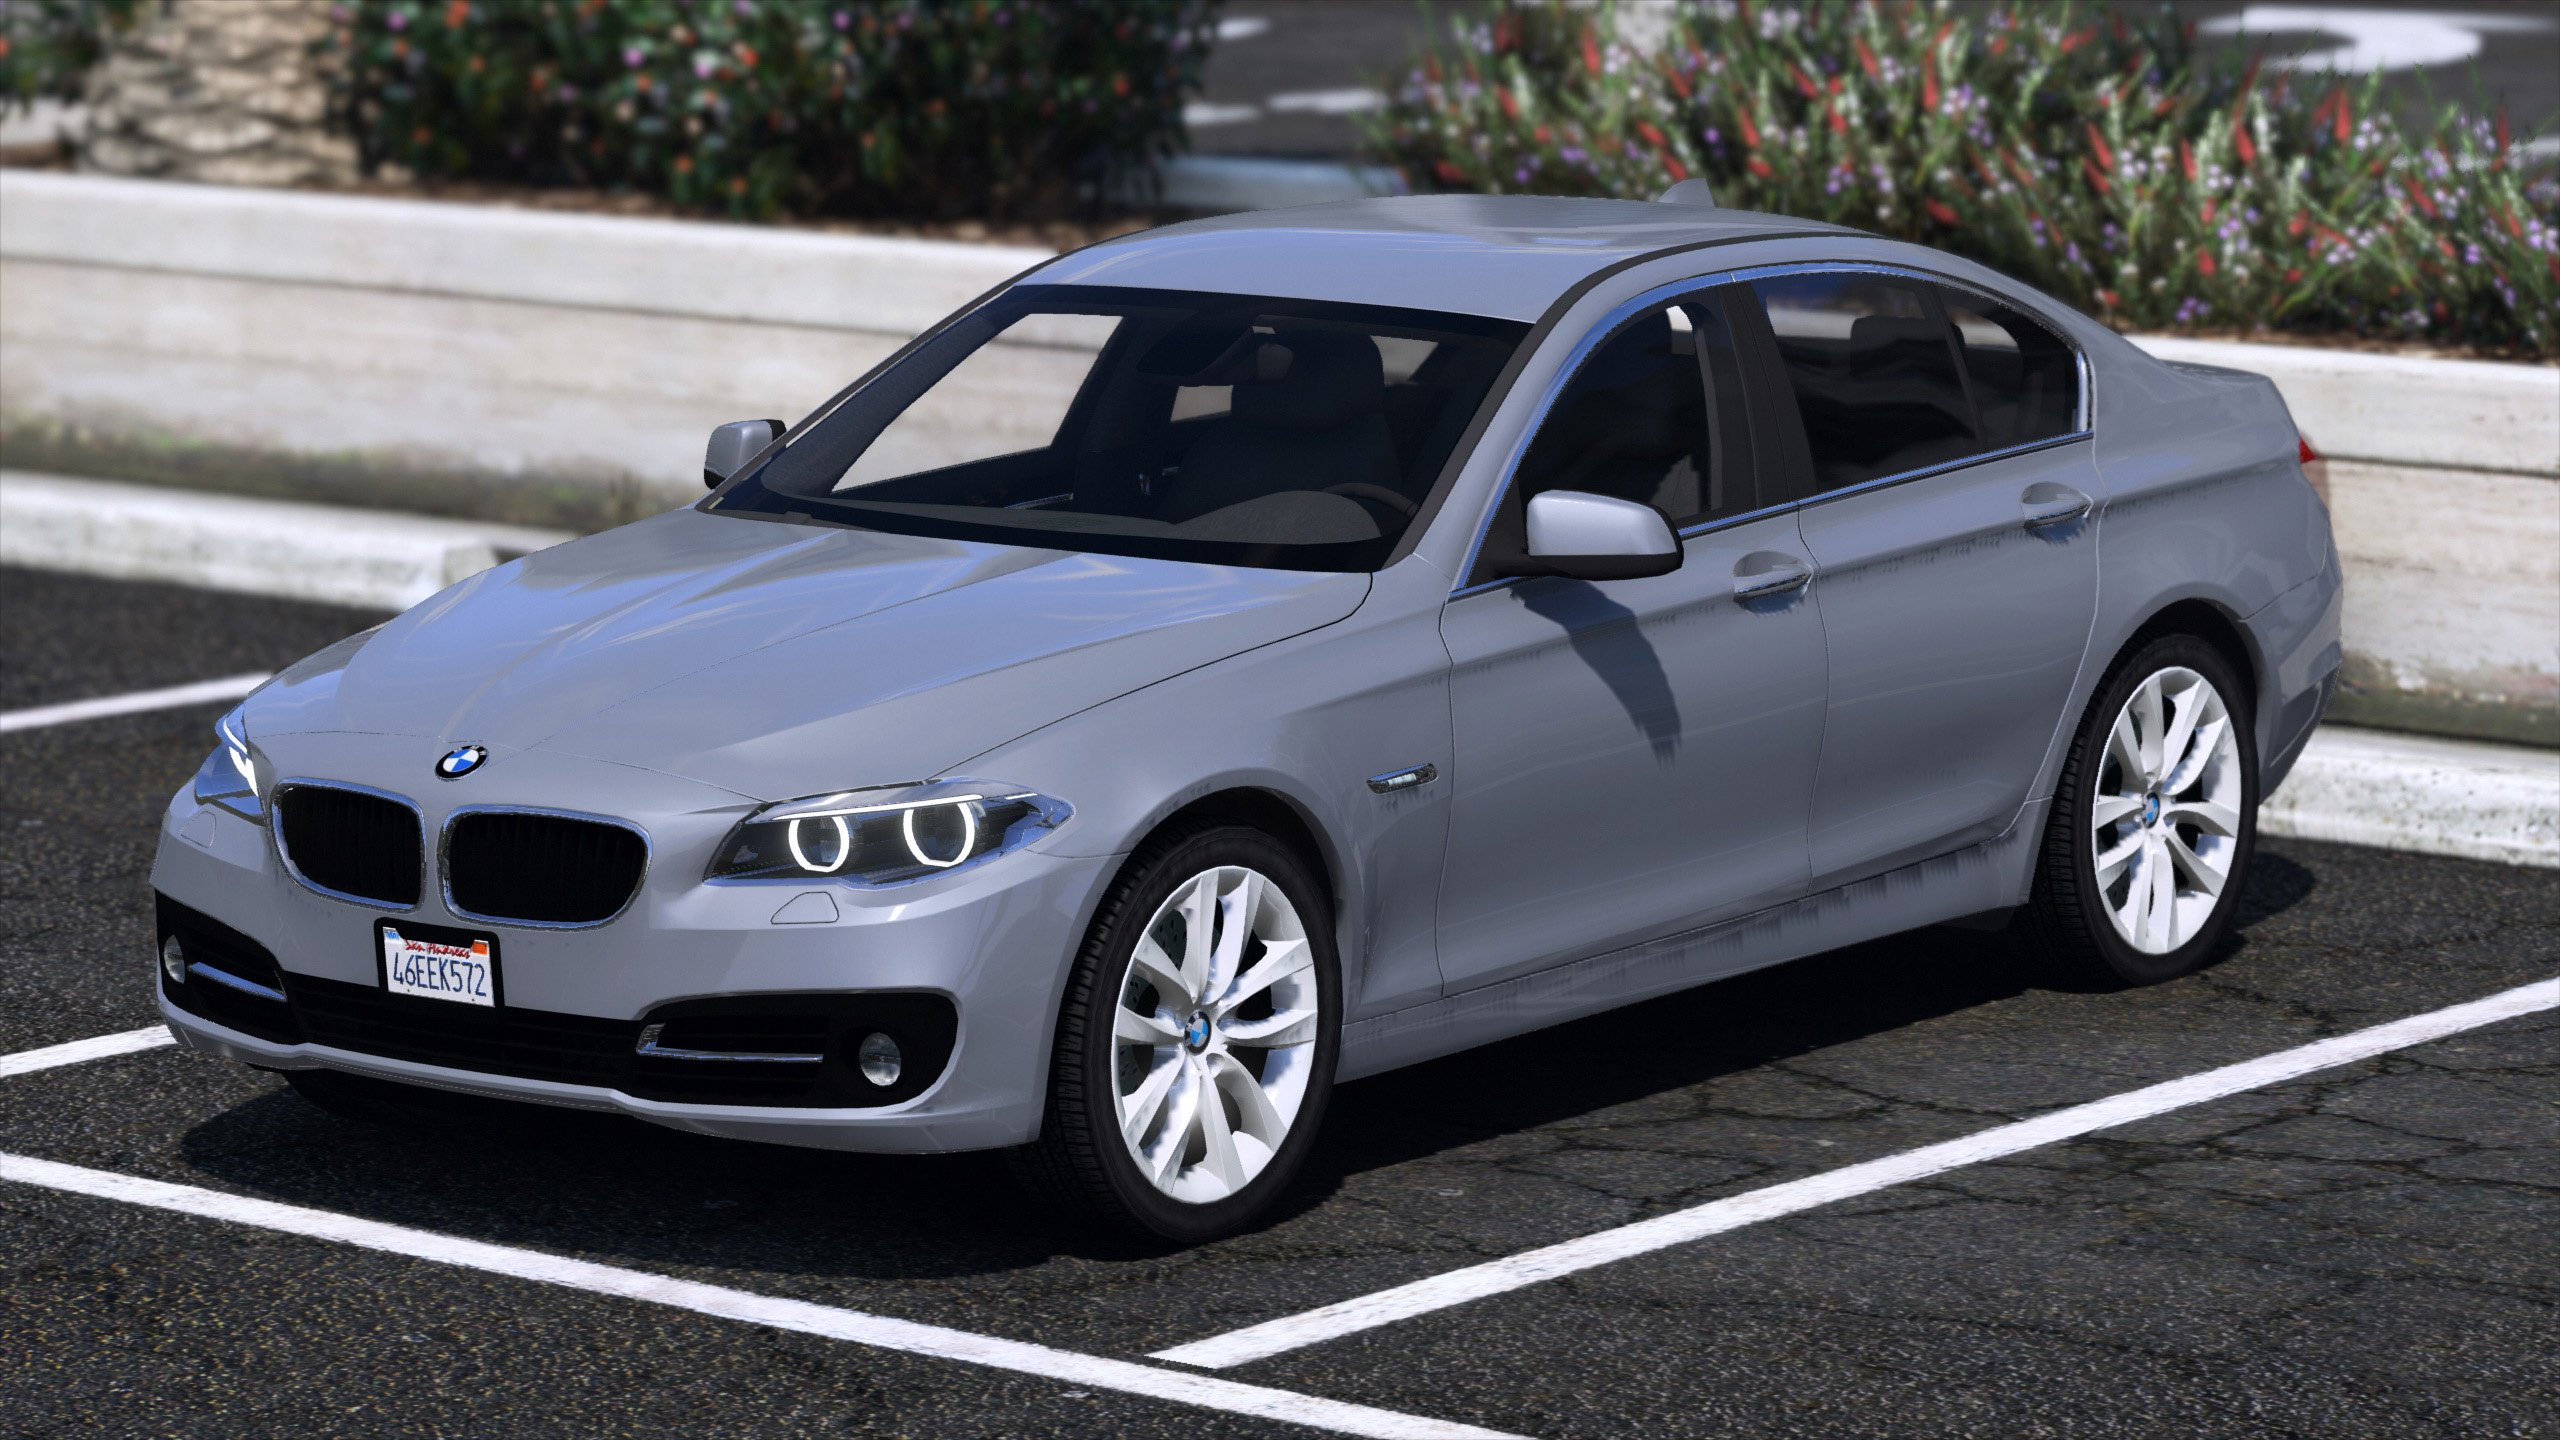 bmw 530d f10 2015 unlocked vehicules pour gta v sur gta modding. Black Bedroom Furniture Sets. Home Design Ideas